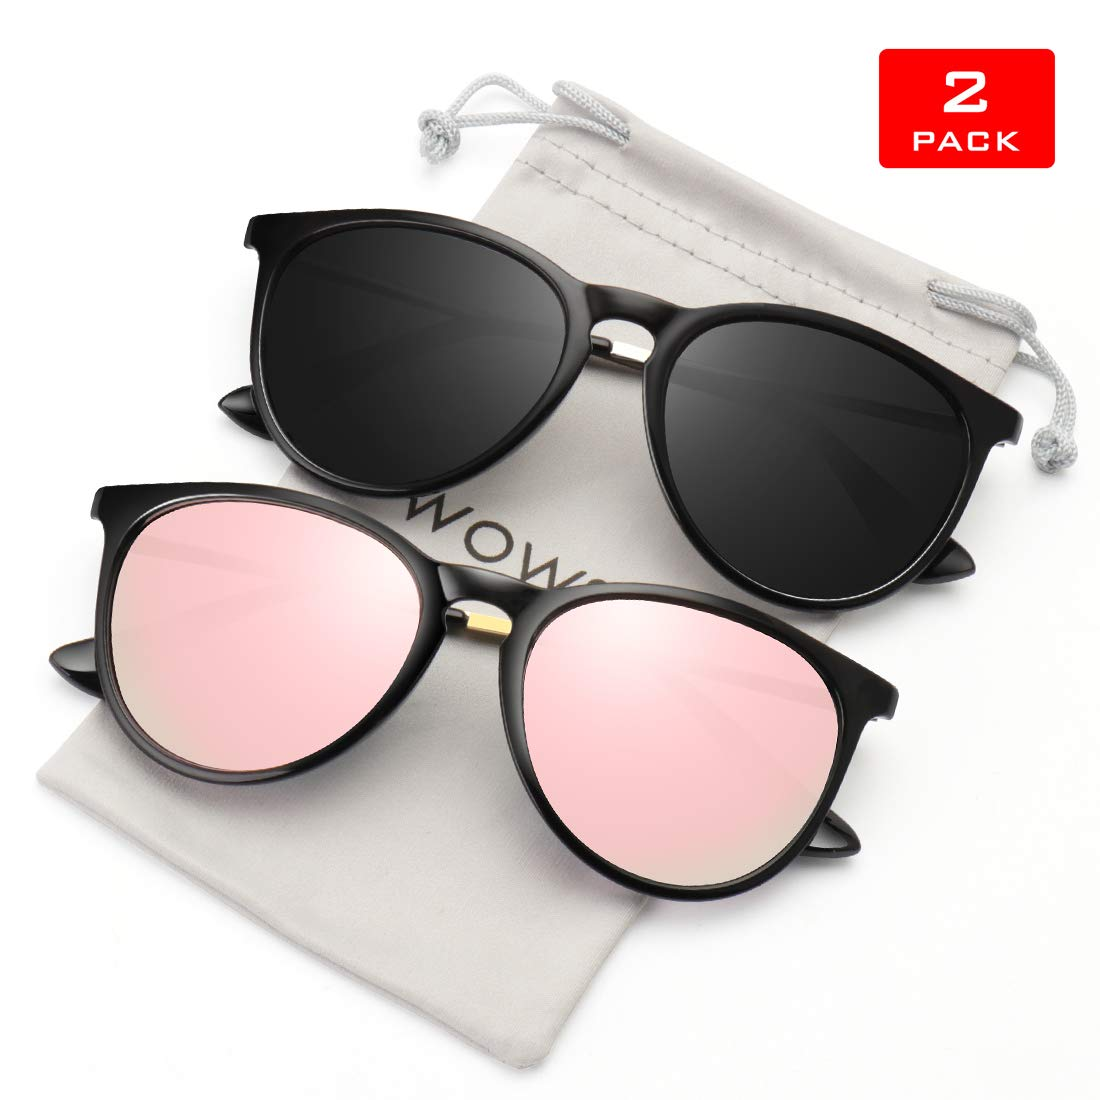 WOWSUN Polarized Sunglasses for Women Vintage Retro Round Mirrored Lens 2 PACK Black Frame Grey Pink mirror sun glasses Shades